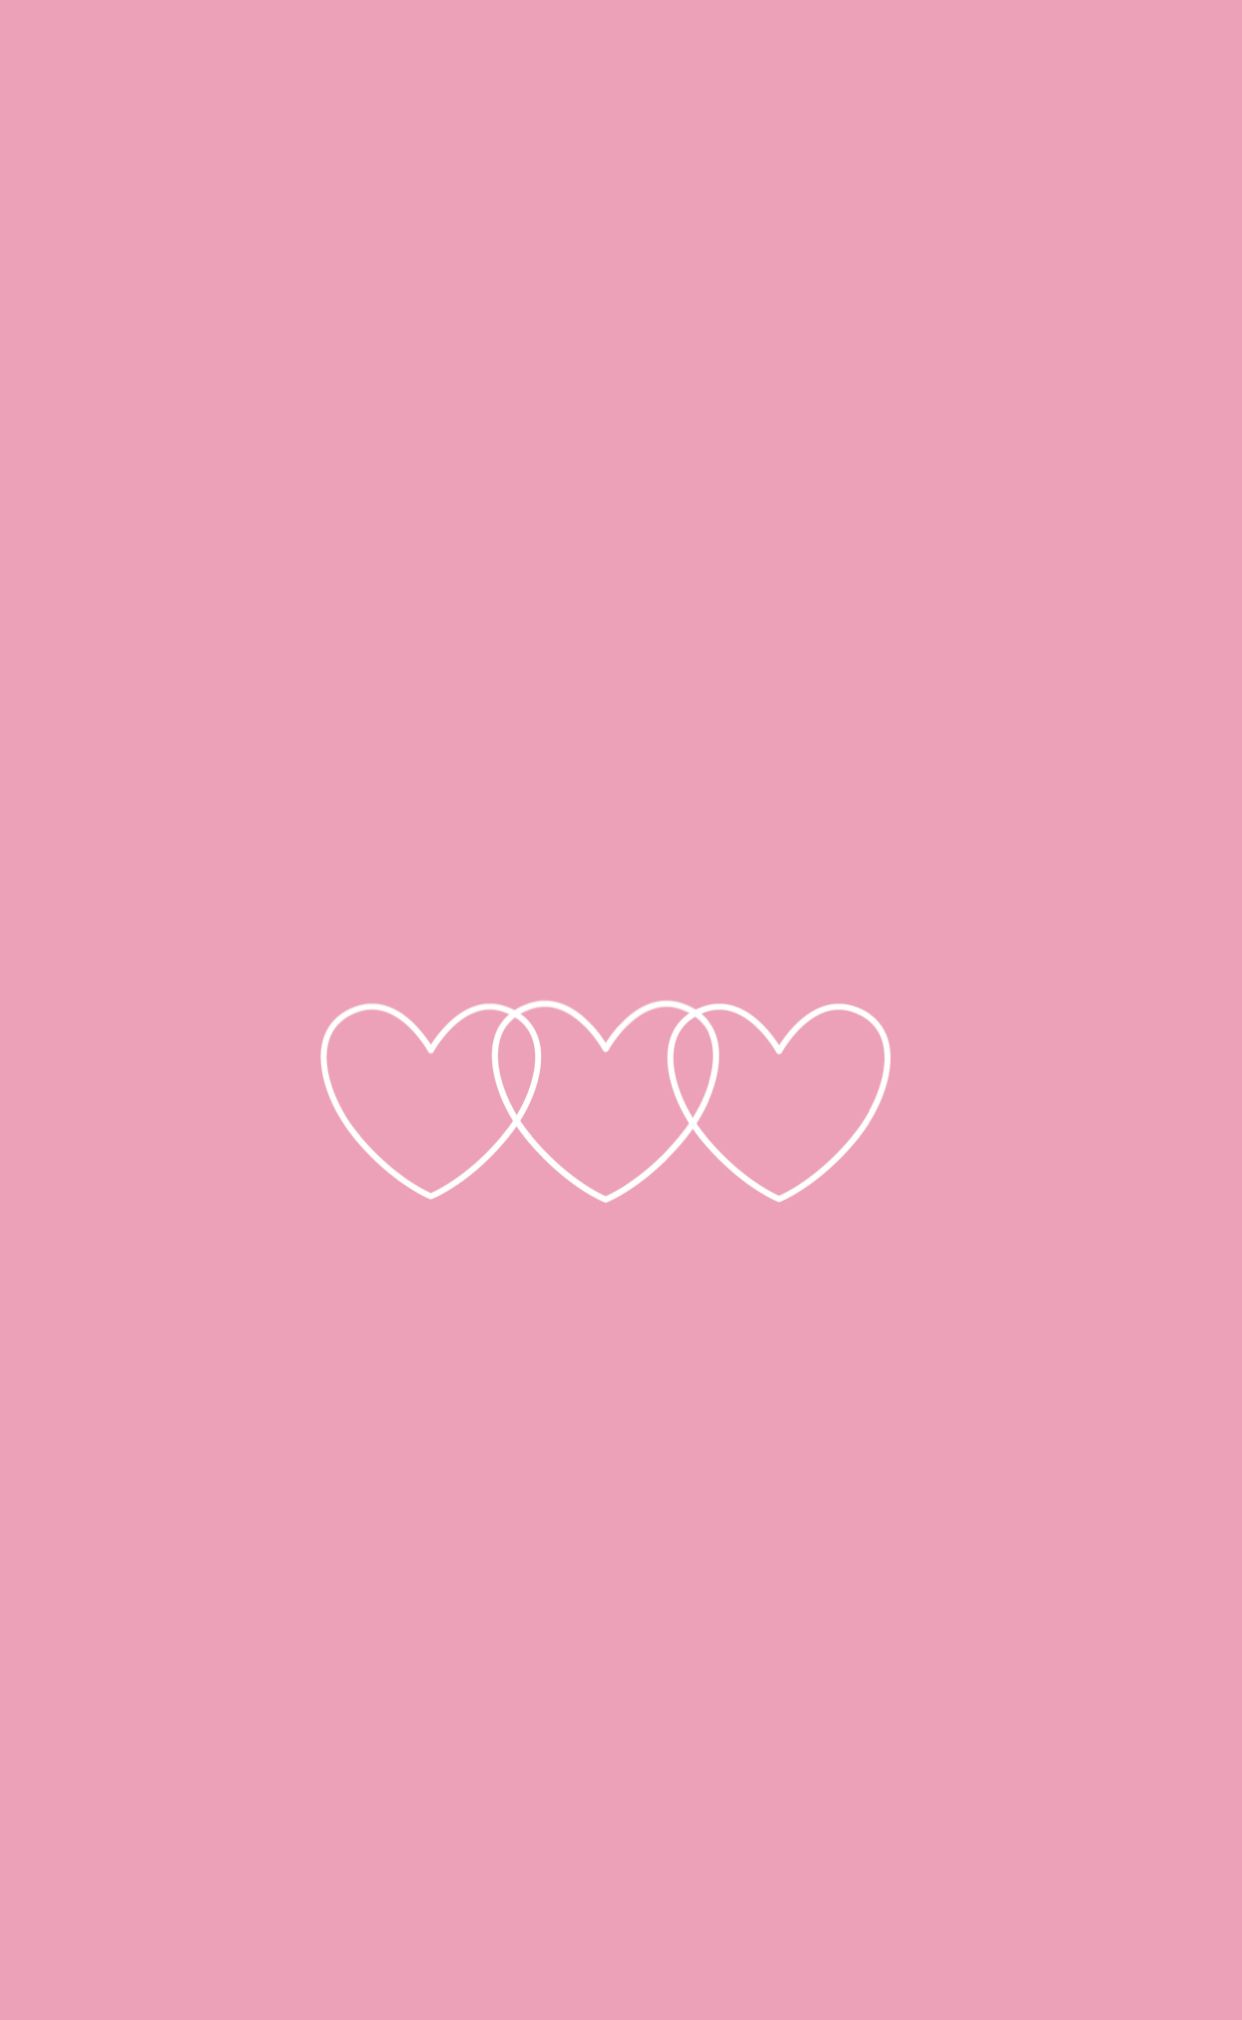 Pink background white hearts in 2019 Cute pink